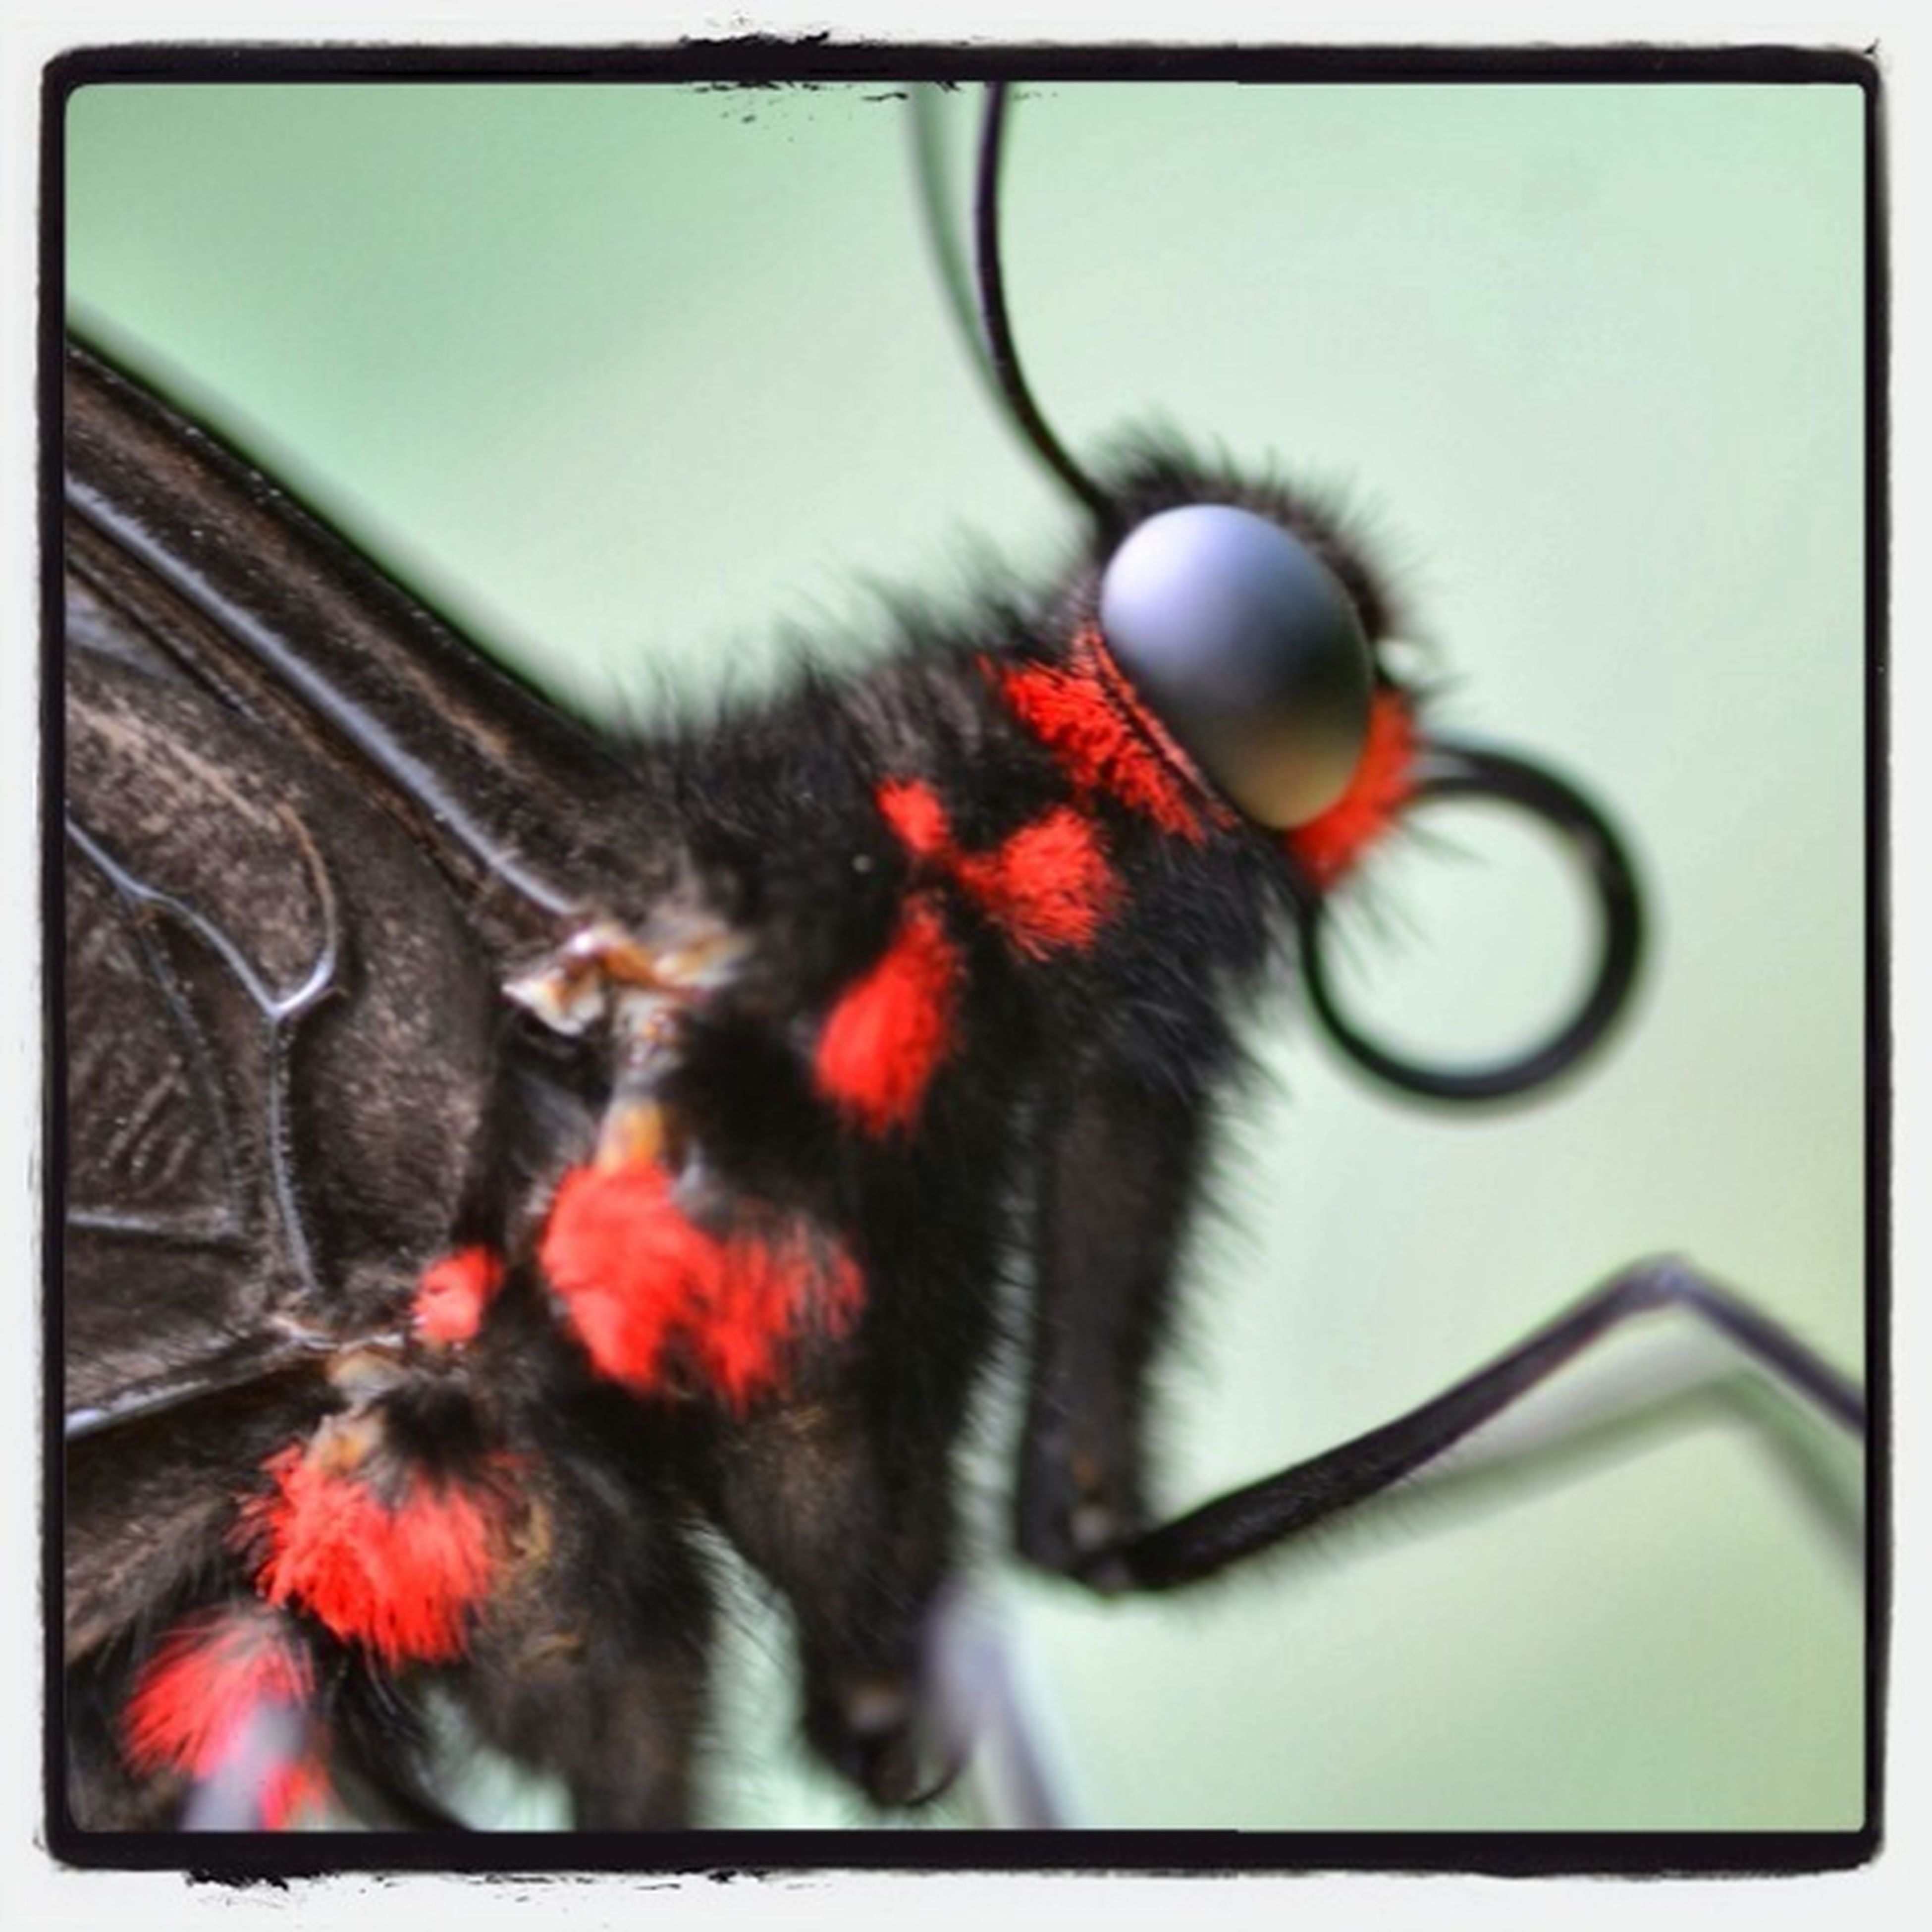 transfer print, animal themes, auto post production filter, one animal, close-up, land vehicle, transportation, insect, wildlife, mode of transport, selective focus, indoors, part of, animals in the wild, red, focus on foreground, no people, glass - material, bicycle, animal body part